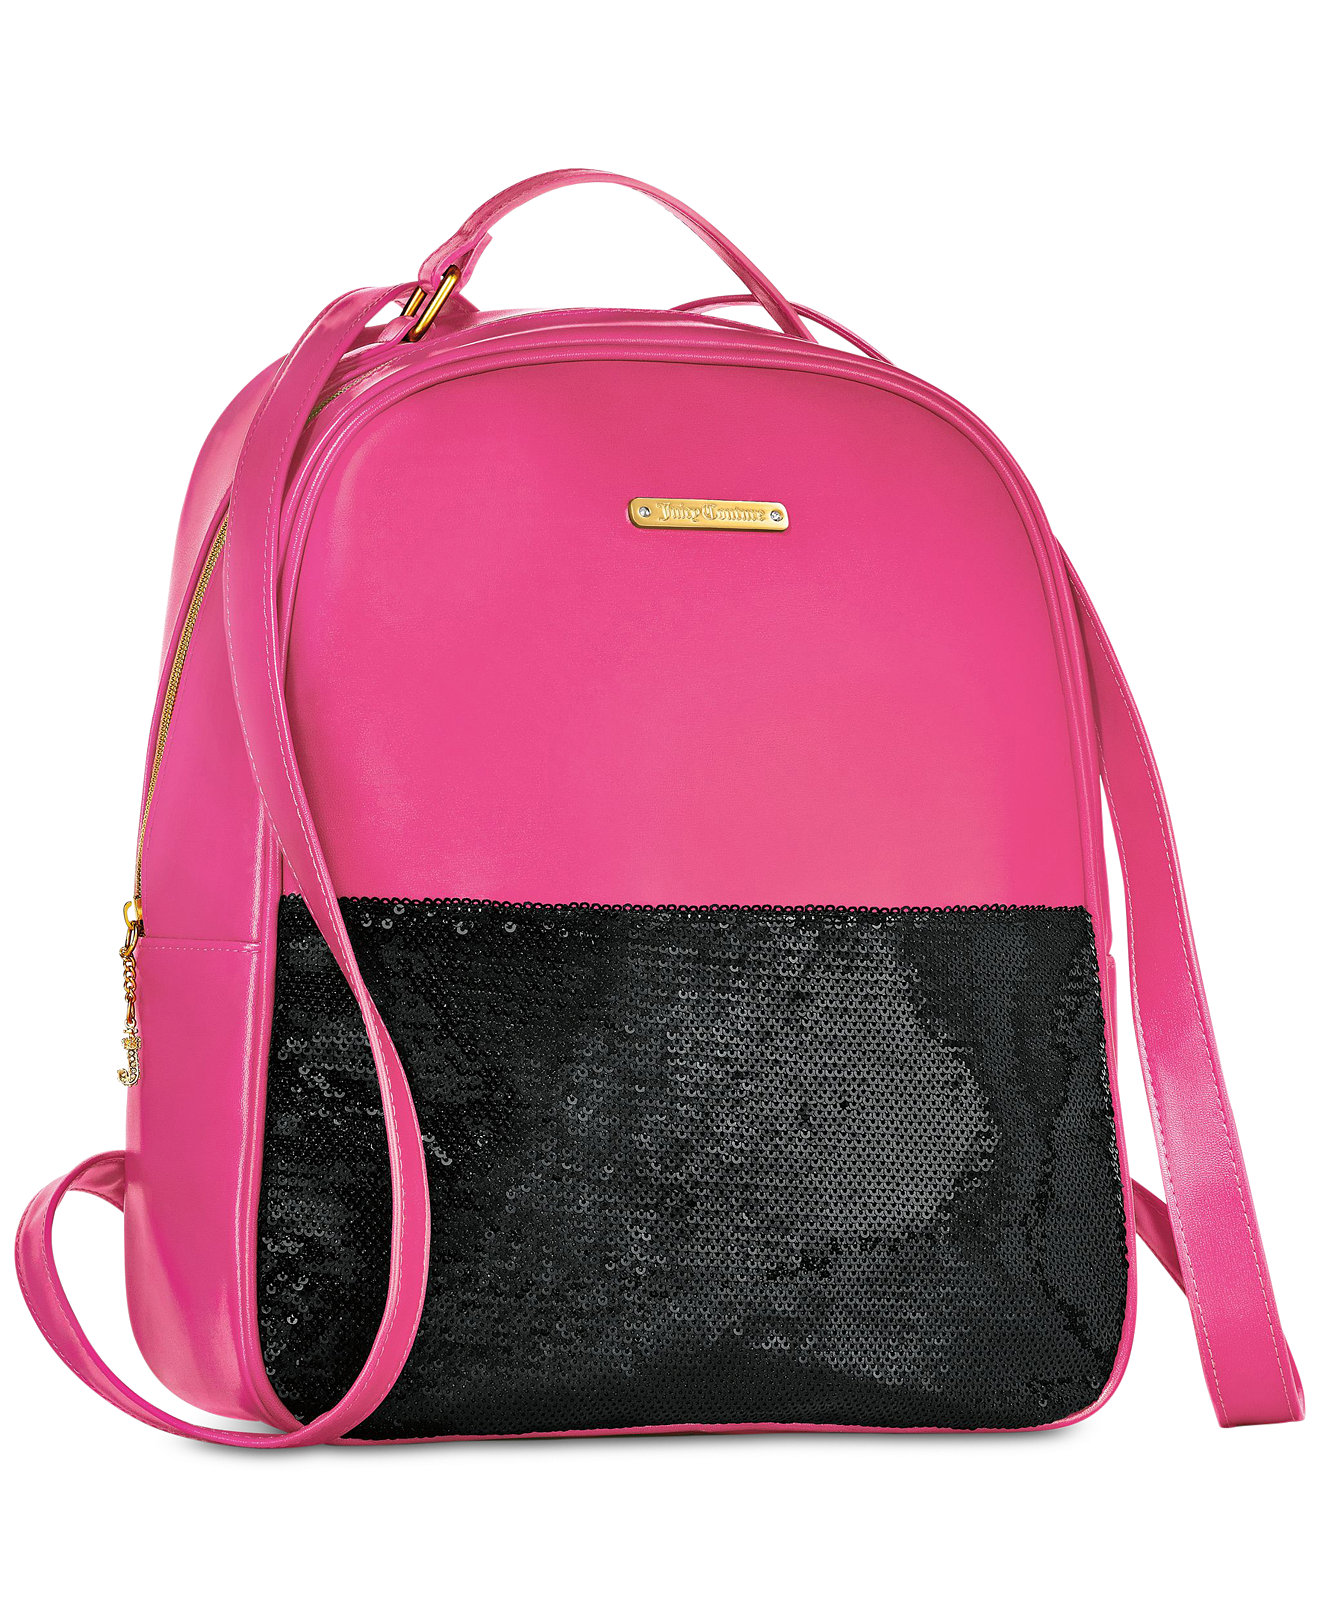 receive a complimentary juicy couture backpack with any large spray purchase from the juicy couture fragrance - Designer Mobel Kollektion La Chance